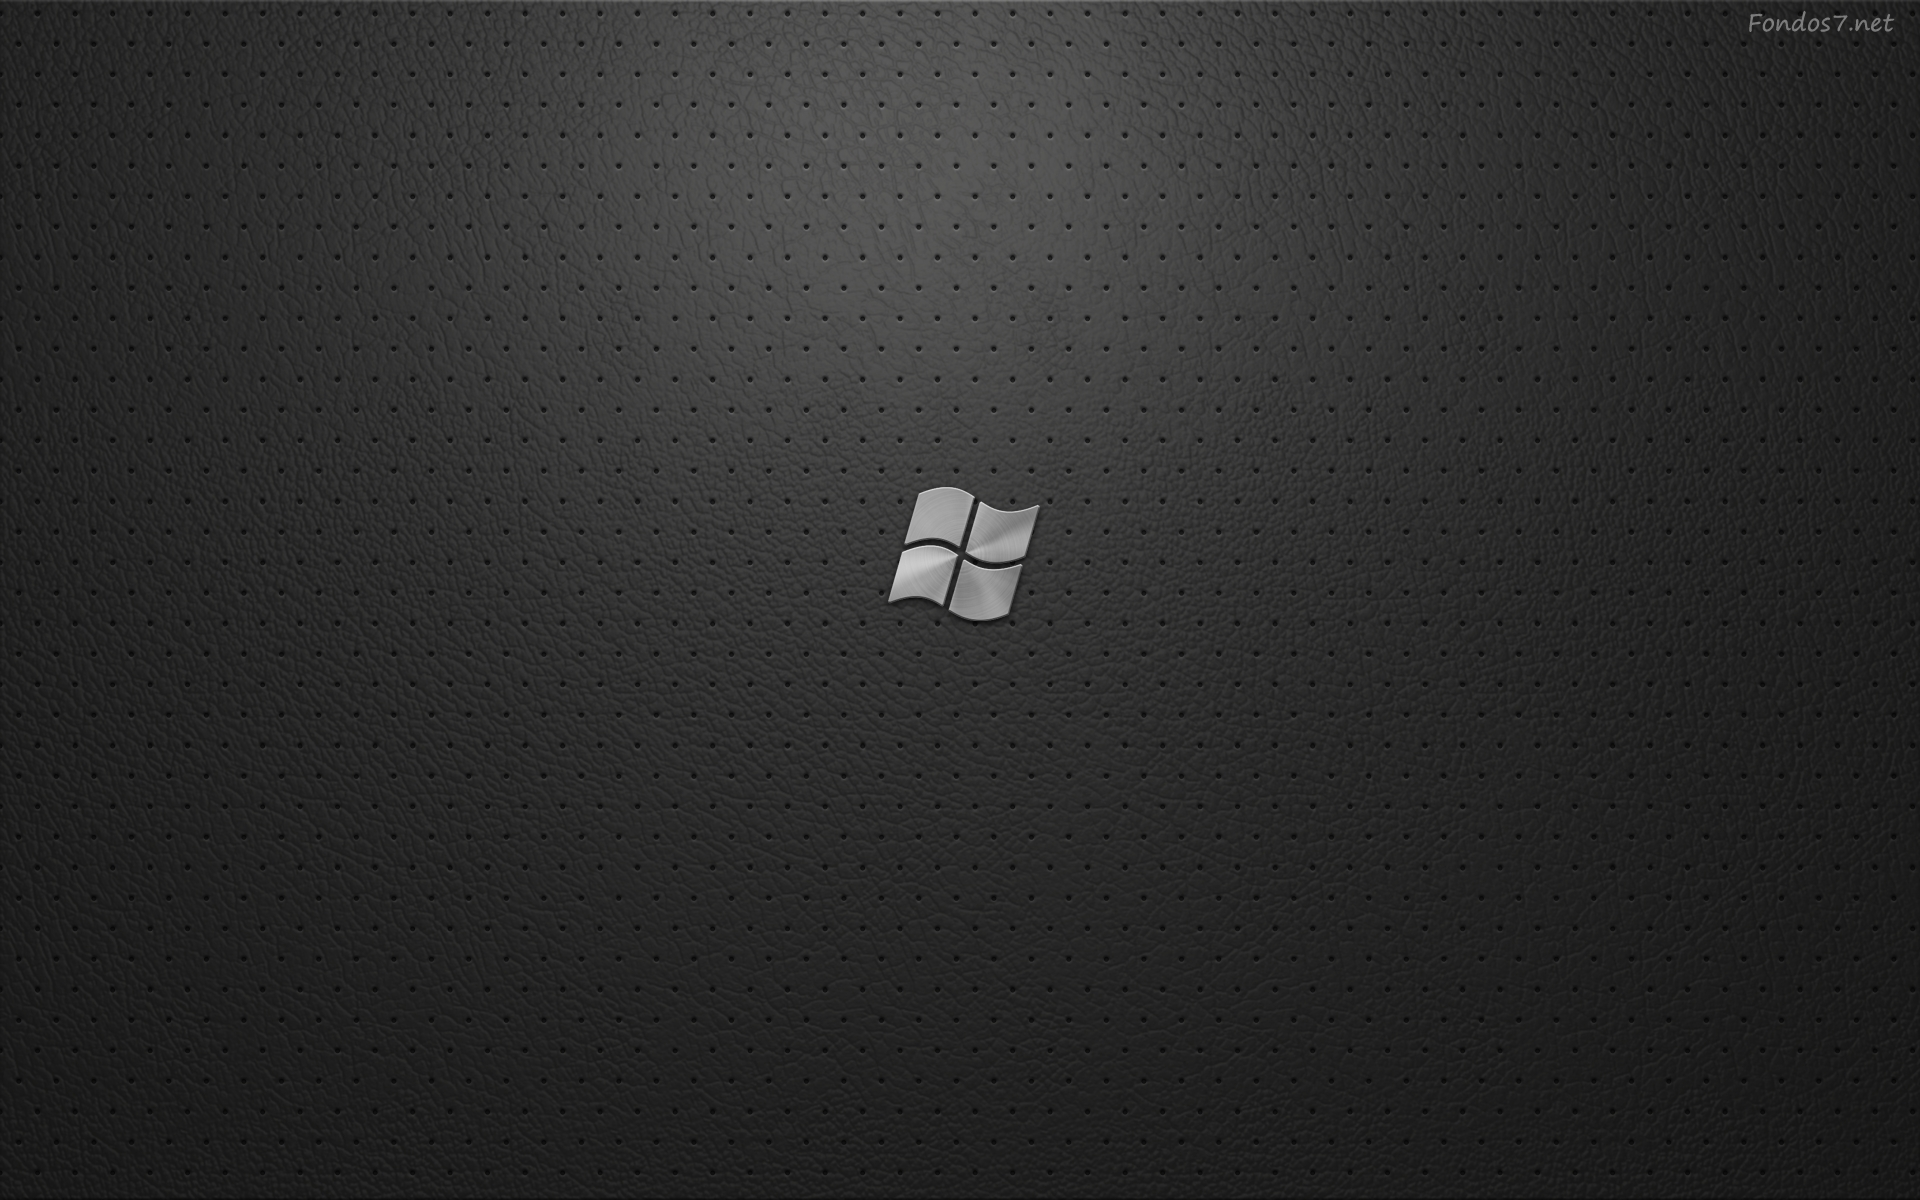 Windows 7 Wallpaper Widescreen Black Images Pictures   Becuo 1920x1200